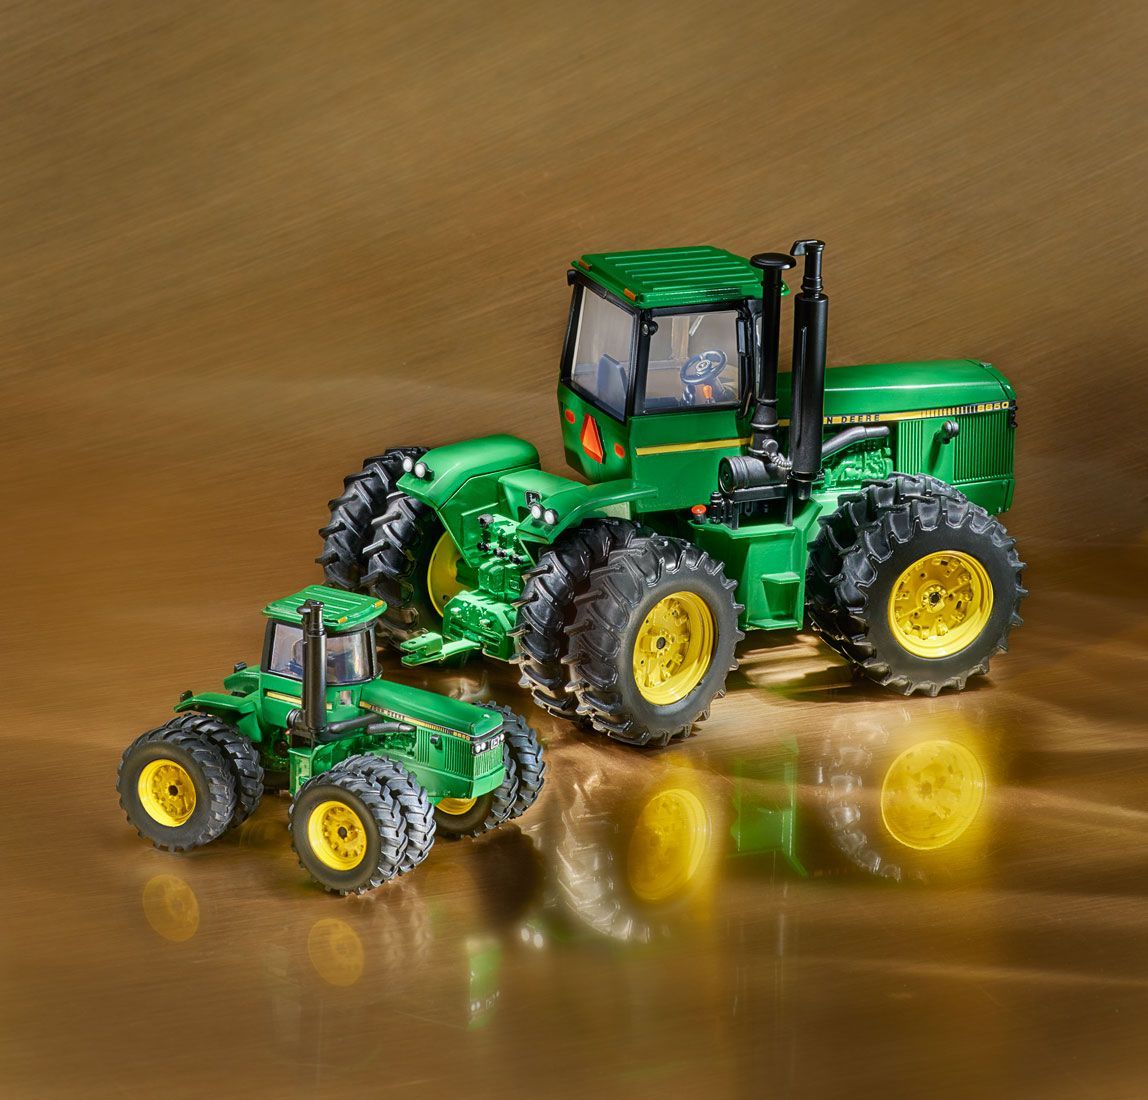 Green Toy Farmer tractors